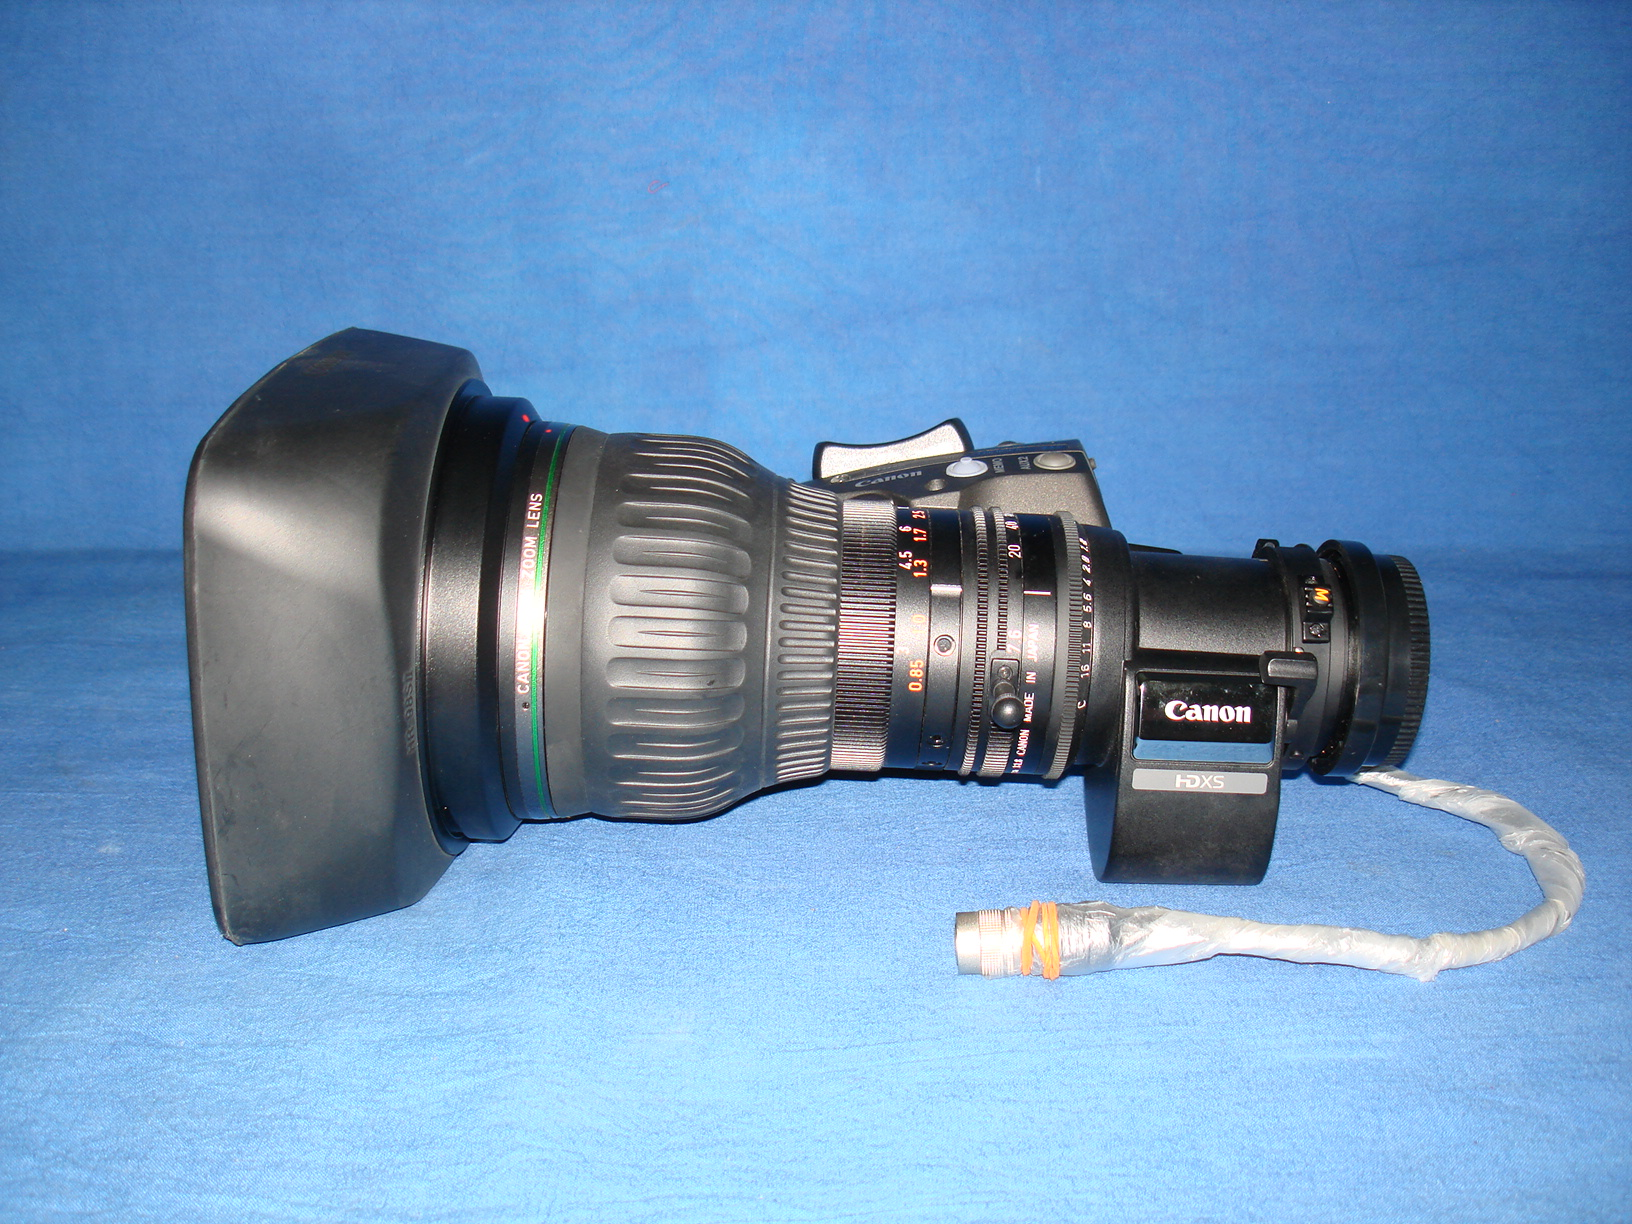 Sony, Canon and Fujinon HD and SD lenses - brand new and used - Image #1